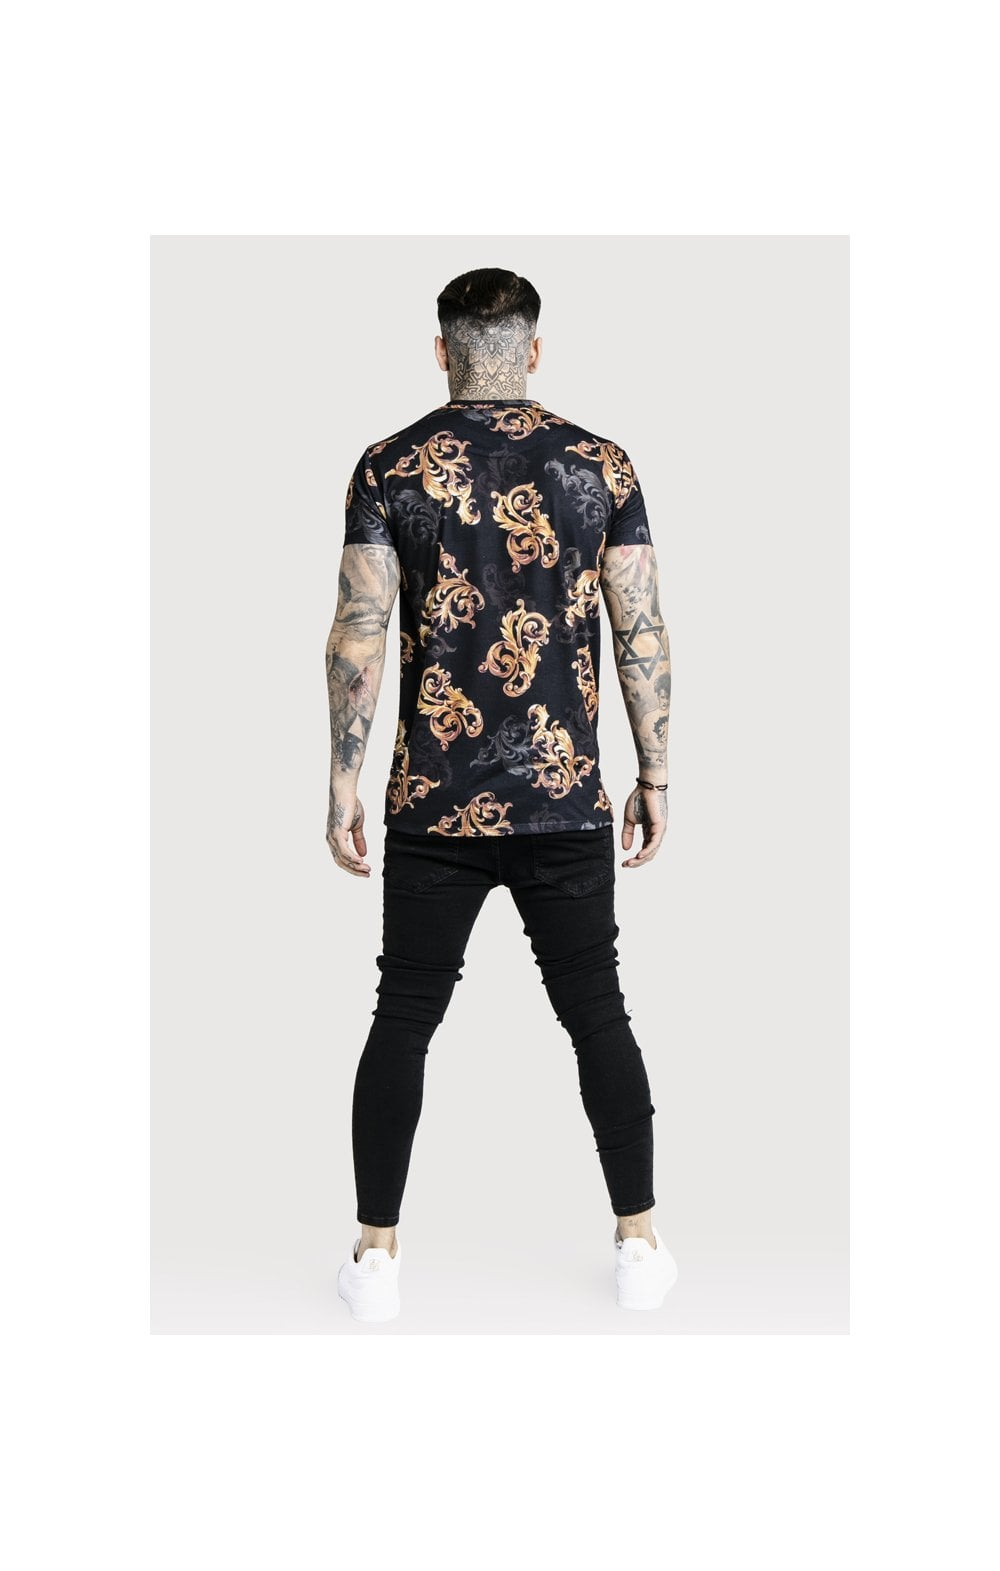 SikSilk x Dani Alves Reverse Collar Tee - Black (6)